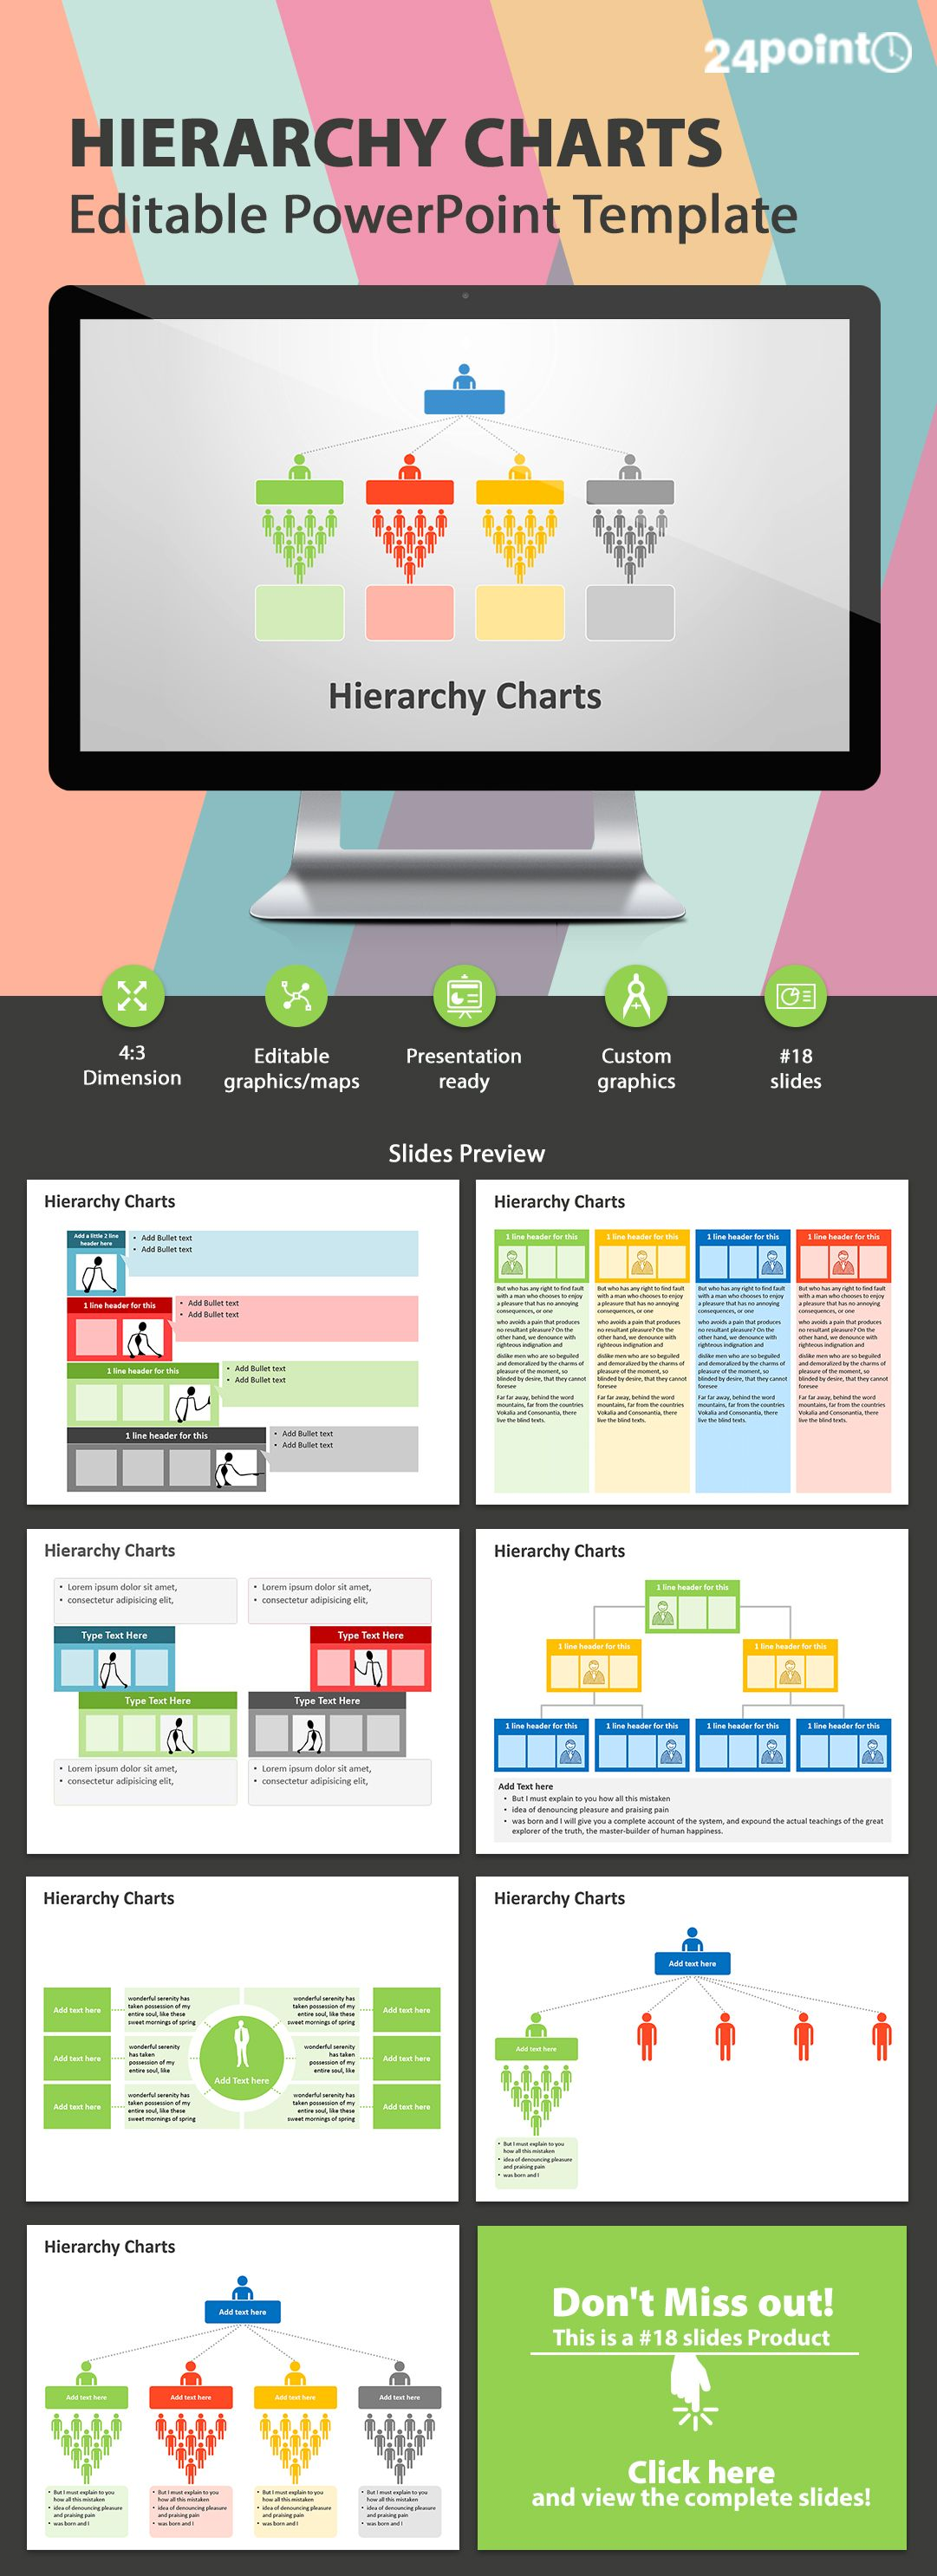 Editable powerpoint template hierarchy charts this colorful and editable powerpoint template hierarchy charts this colorful and visual hierarchy chart will help you show hierarchical relationships from top to bottom toneelgroepblik Choice Image